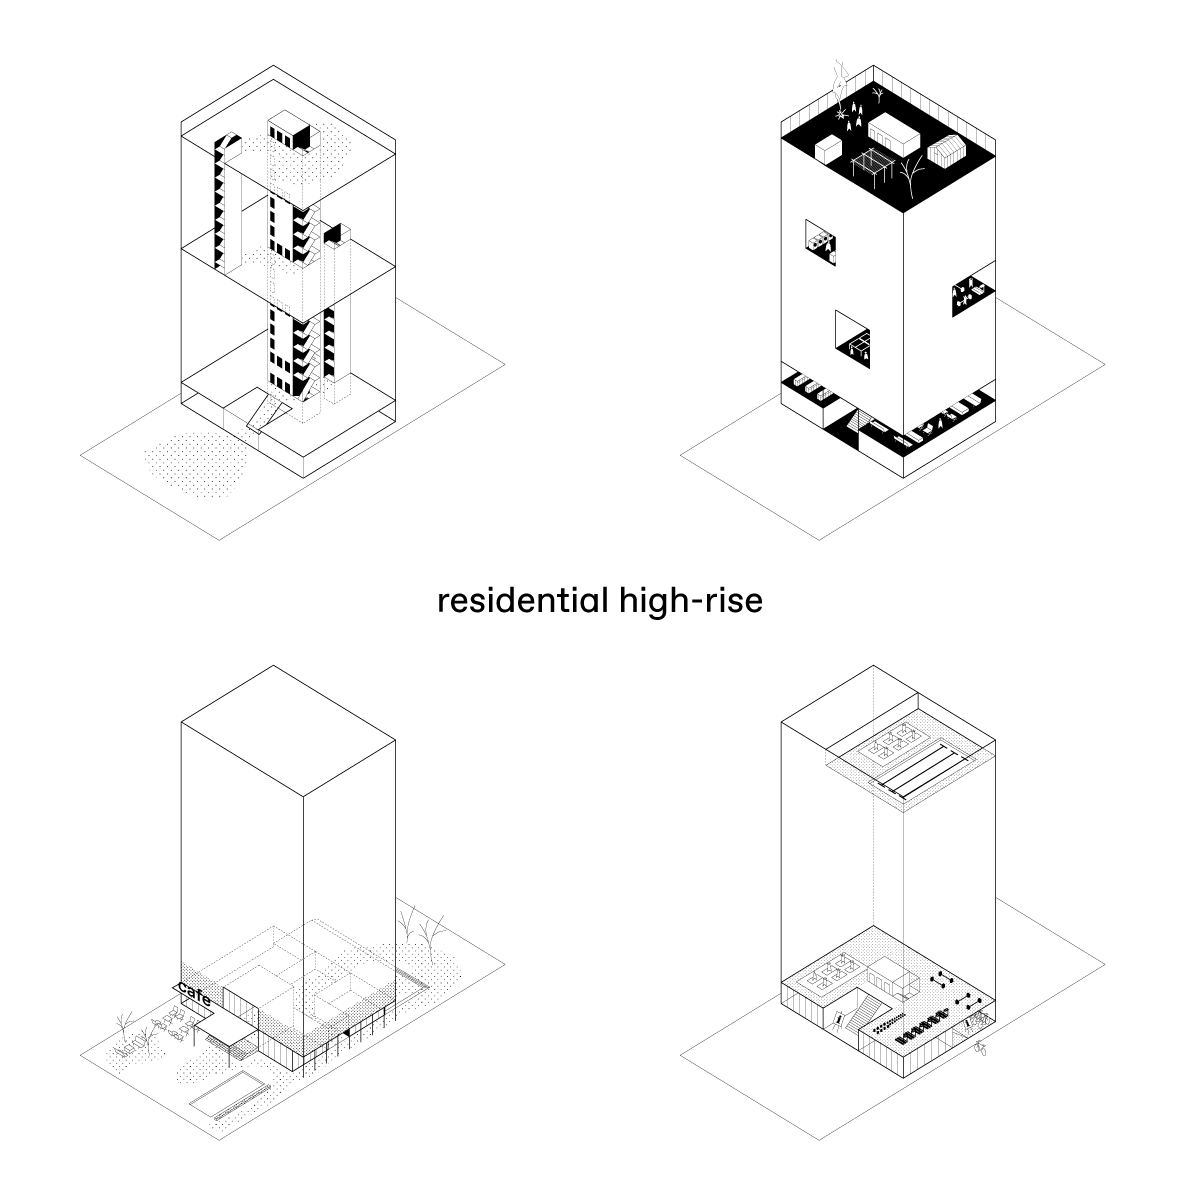 BETA office for architecture and the city Amsterdam Active Design high rise isometric